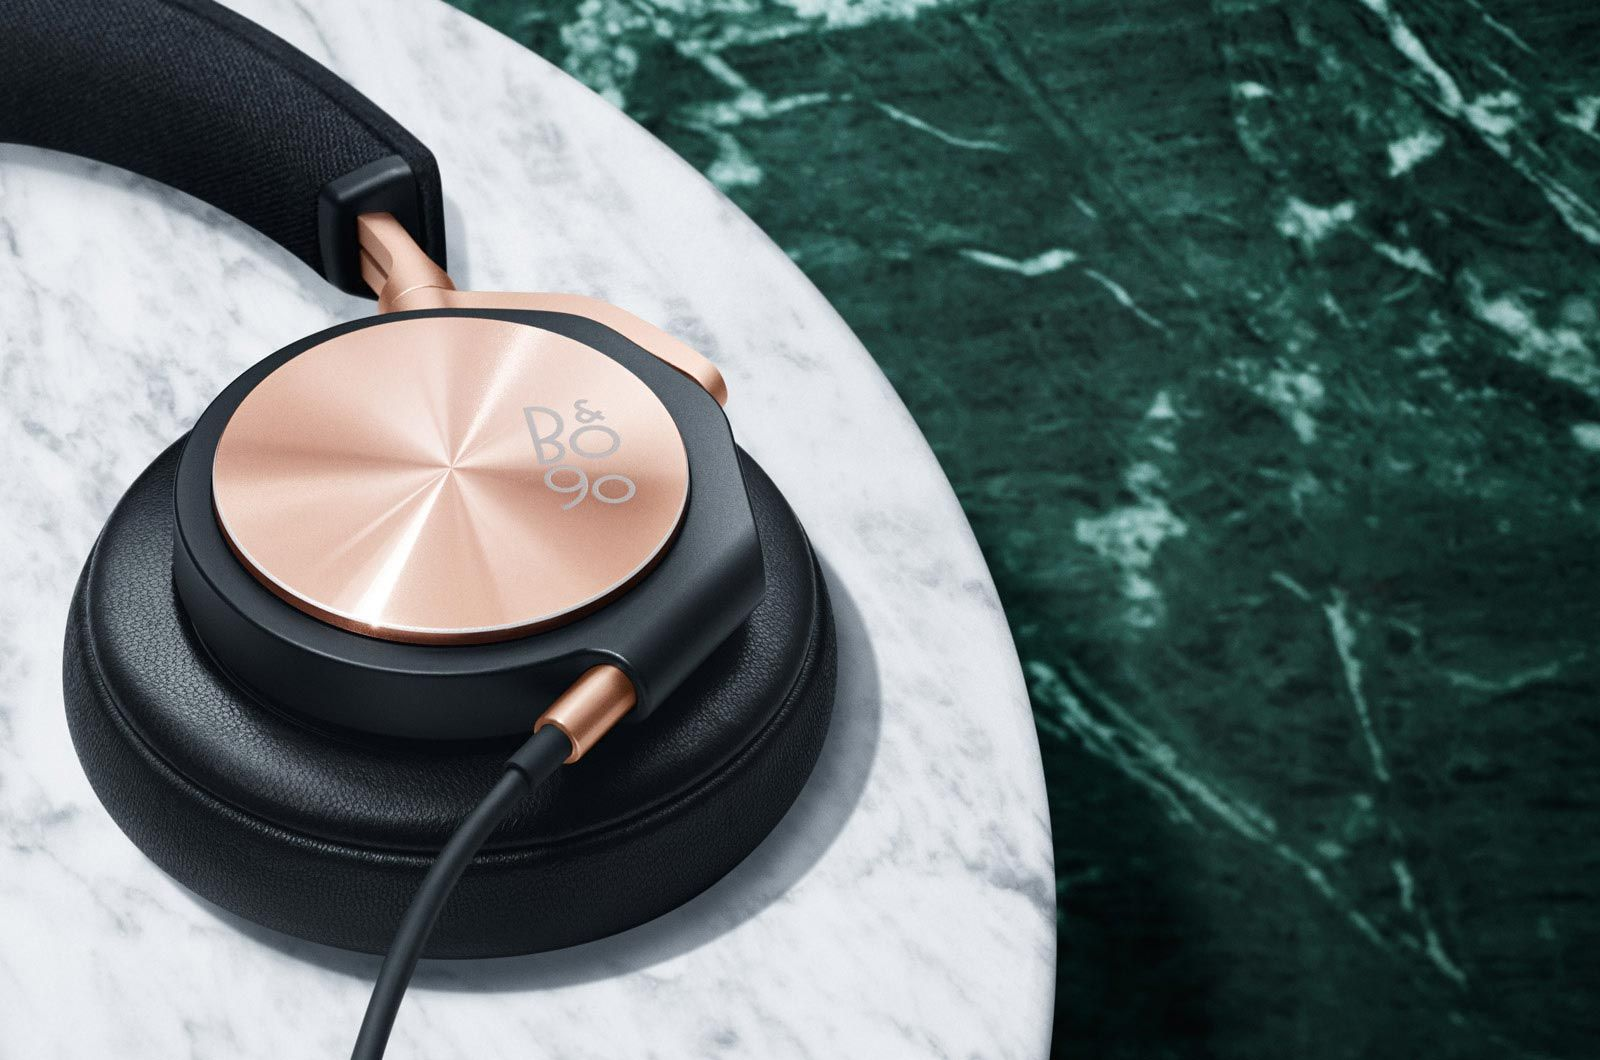 The Love Affair Collection - Bang & Olufsen